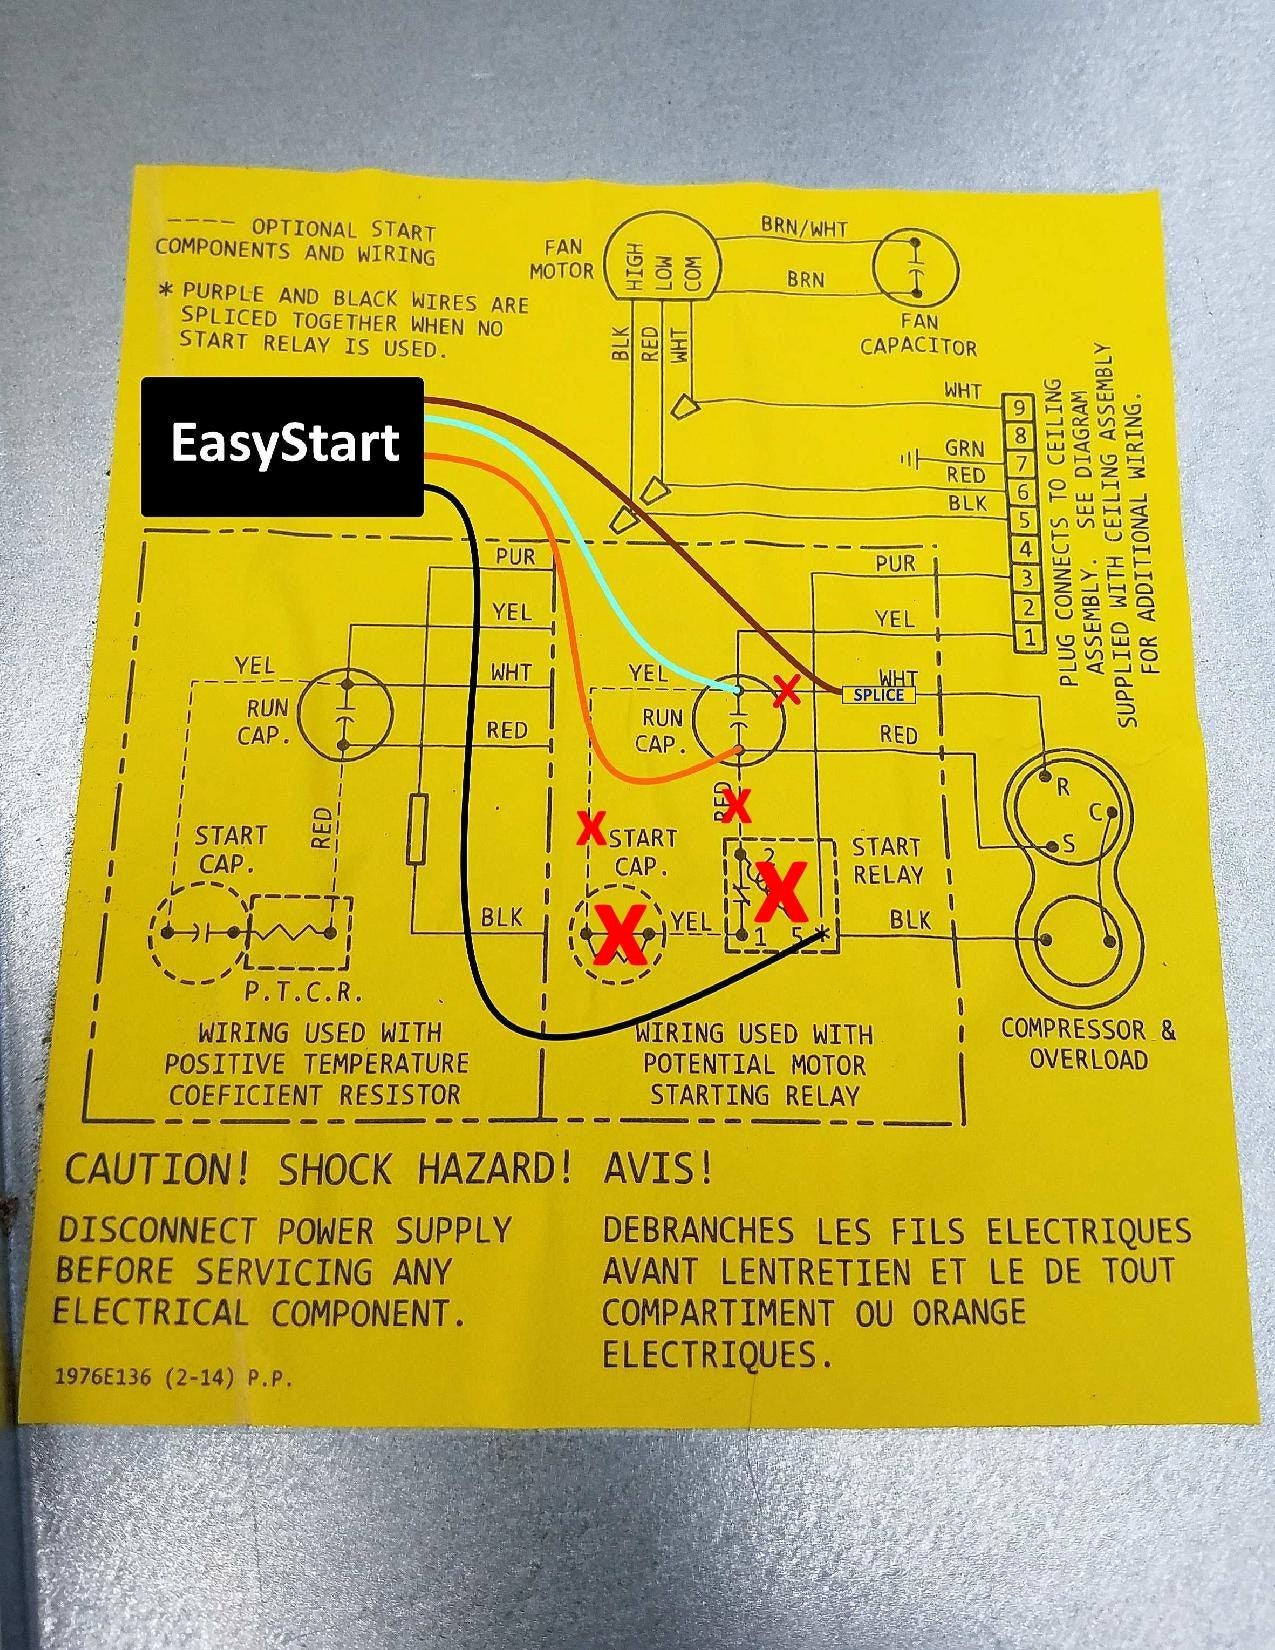 Coleman_Mach_1_EasyStart_364_Wiring_Diagram?9446688477682788130 rv easystart™ soft starter wiring diagrams resource page micro coleman mach 8 wiring diagram at gsmx.co